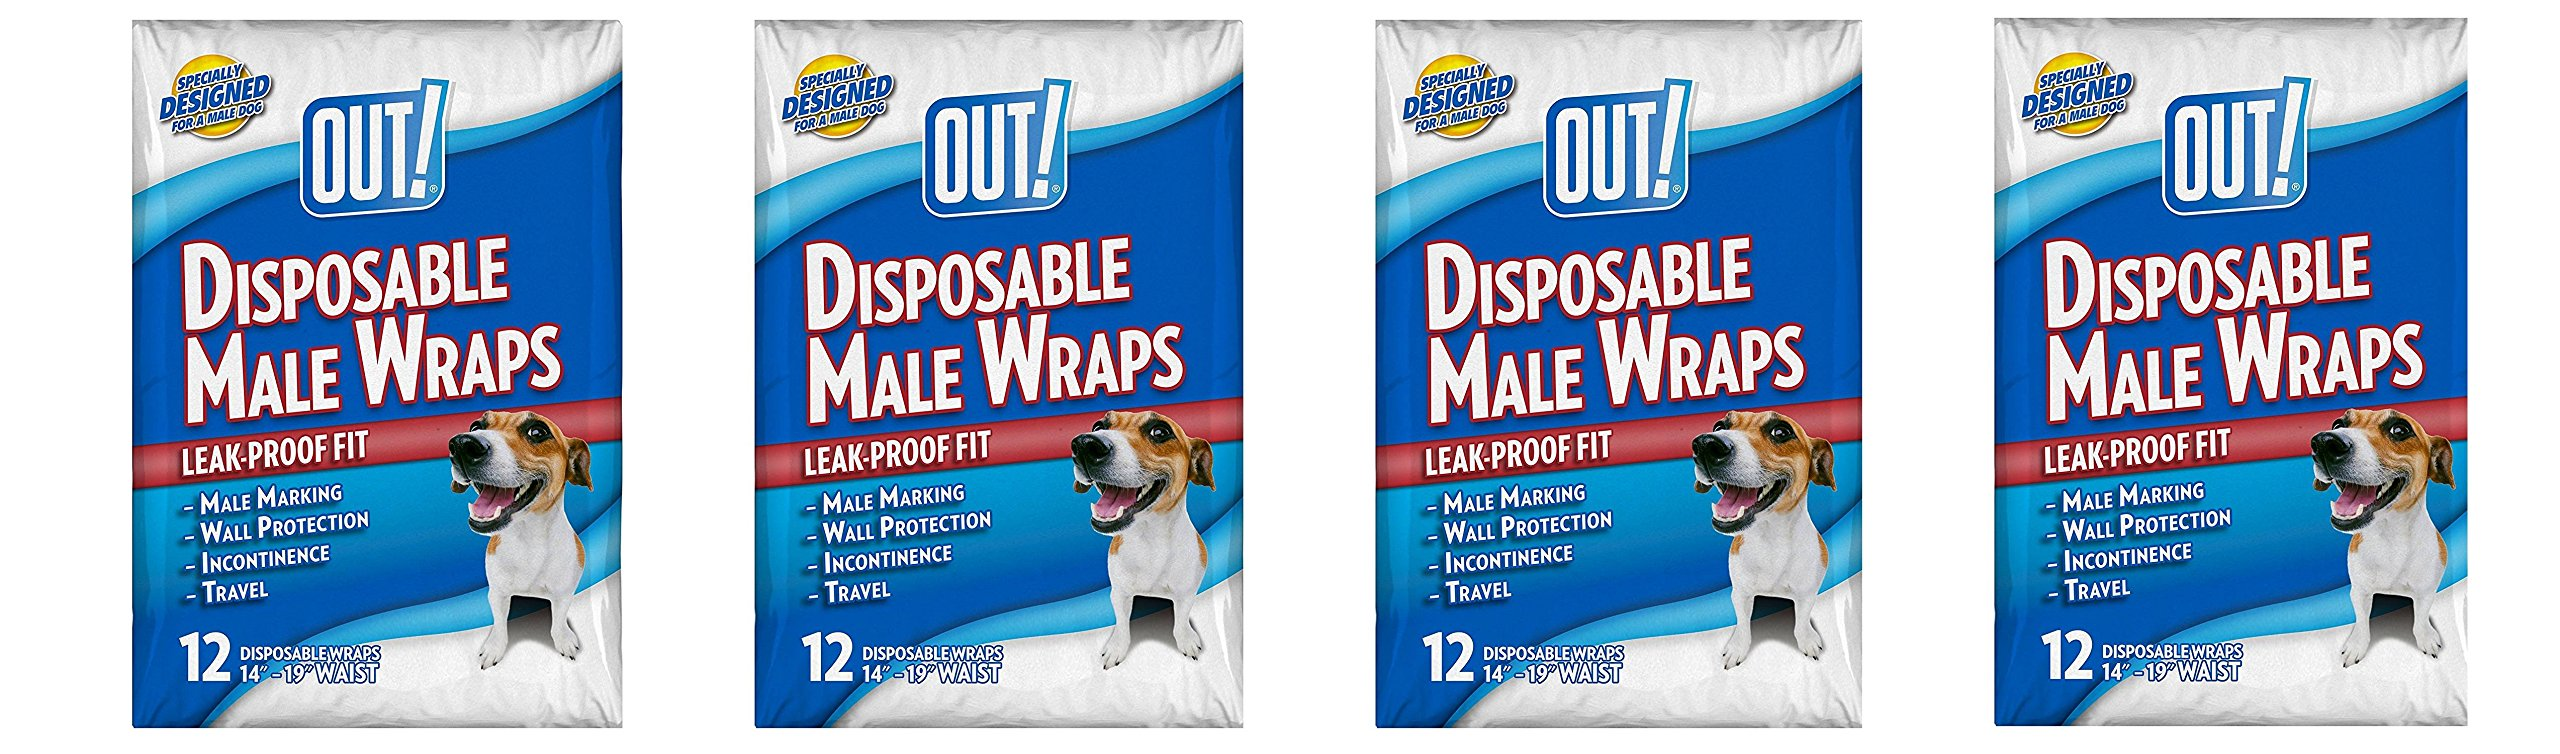 OUT! Disposable Male cKsRpf Wraps, 12 Count (Pack of 4)